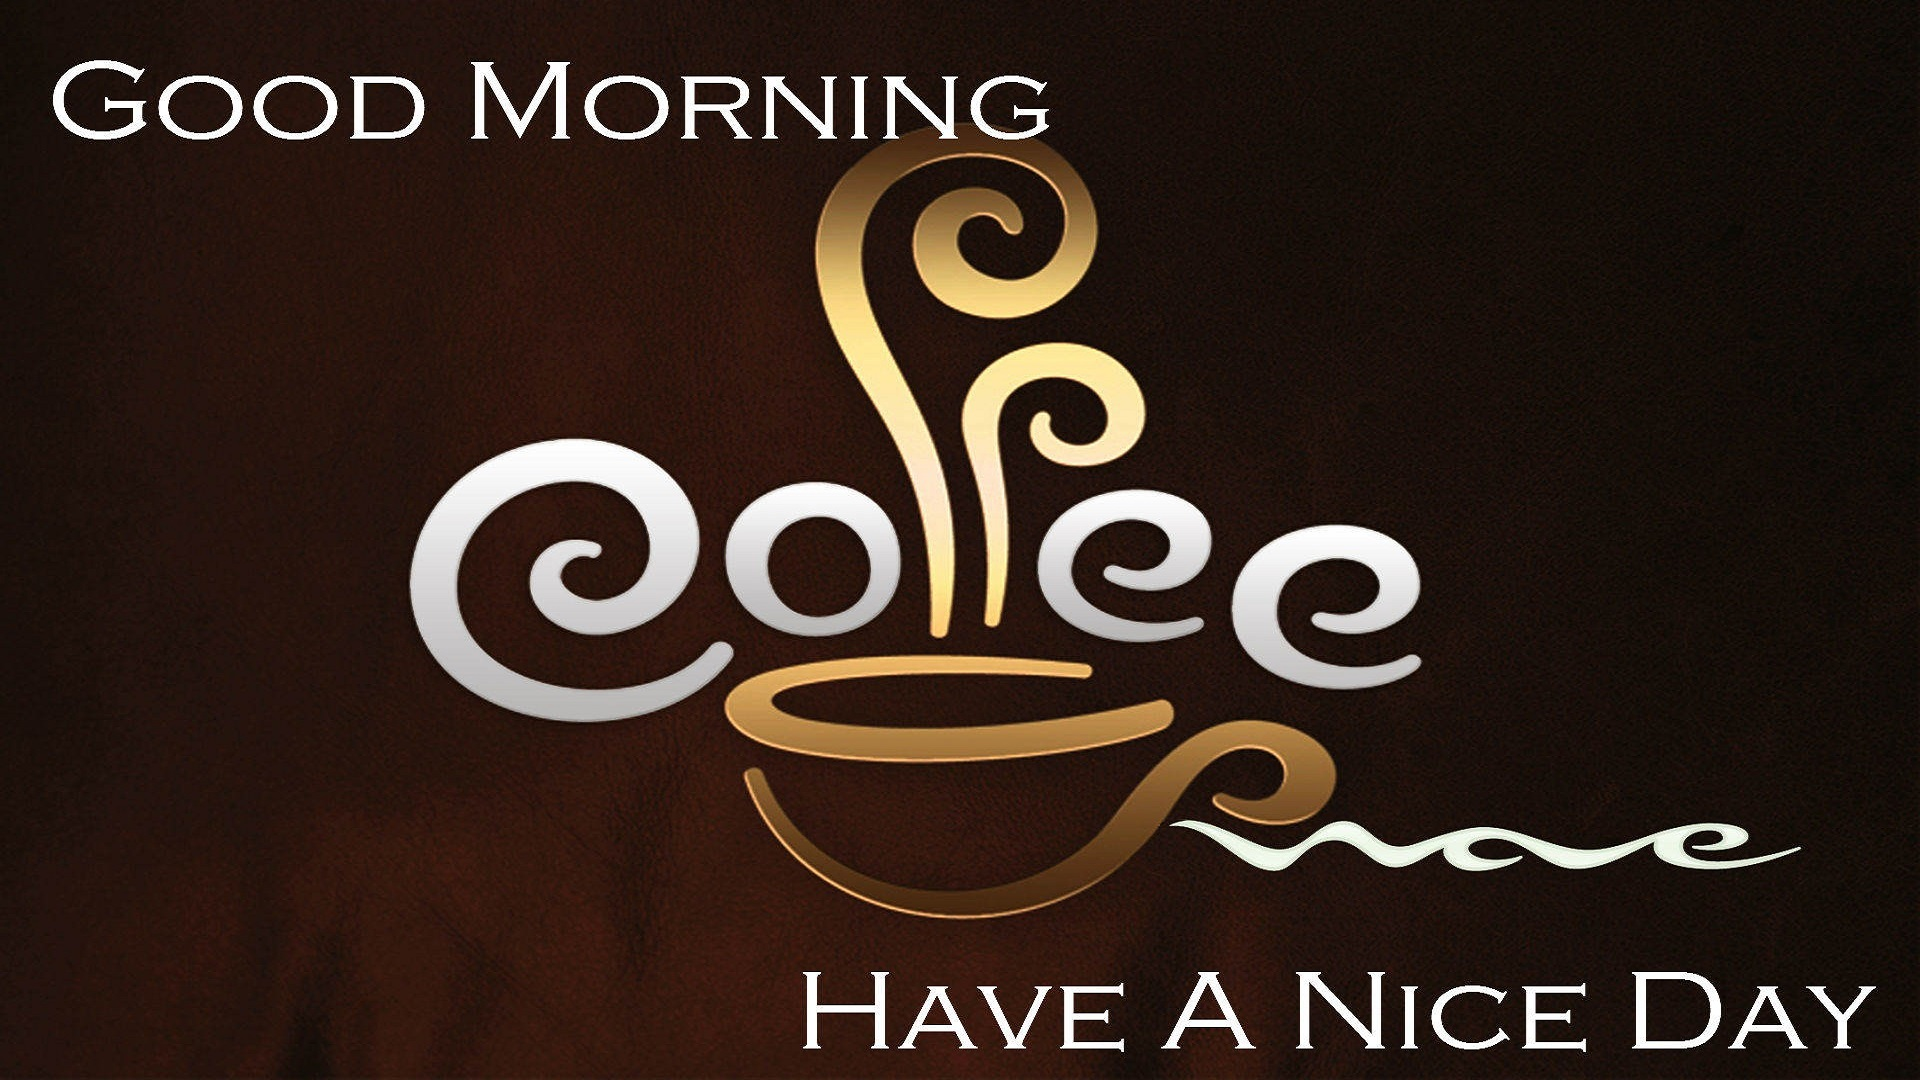 Hd wallpaper of good morning - Free Lovely And Beautiful Good Morning Wishes Hd